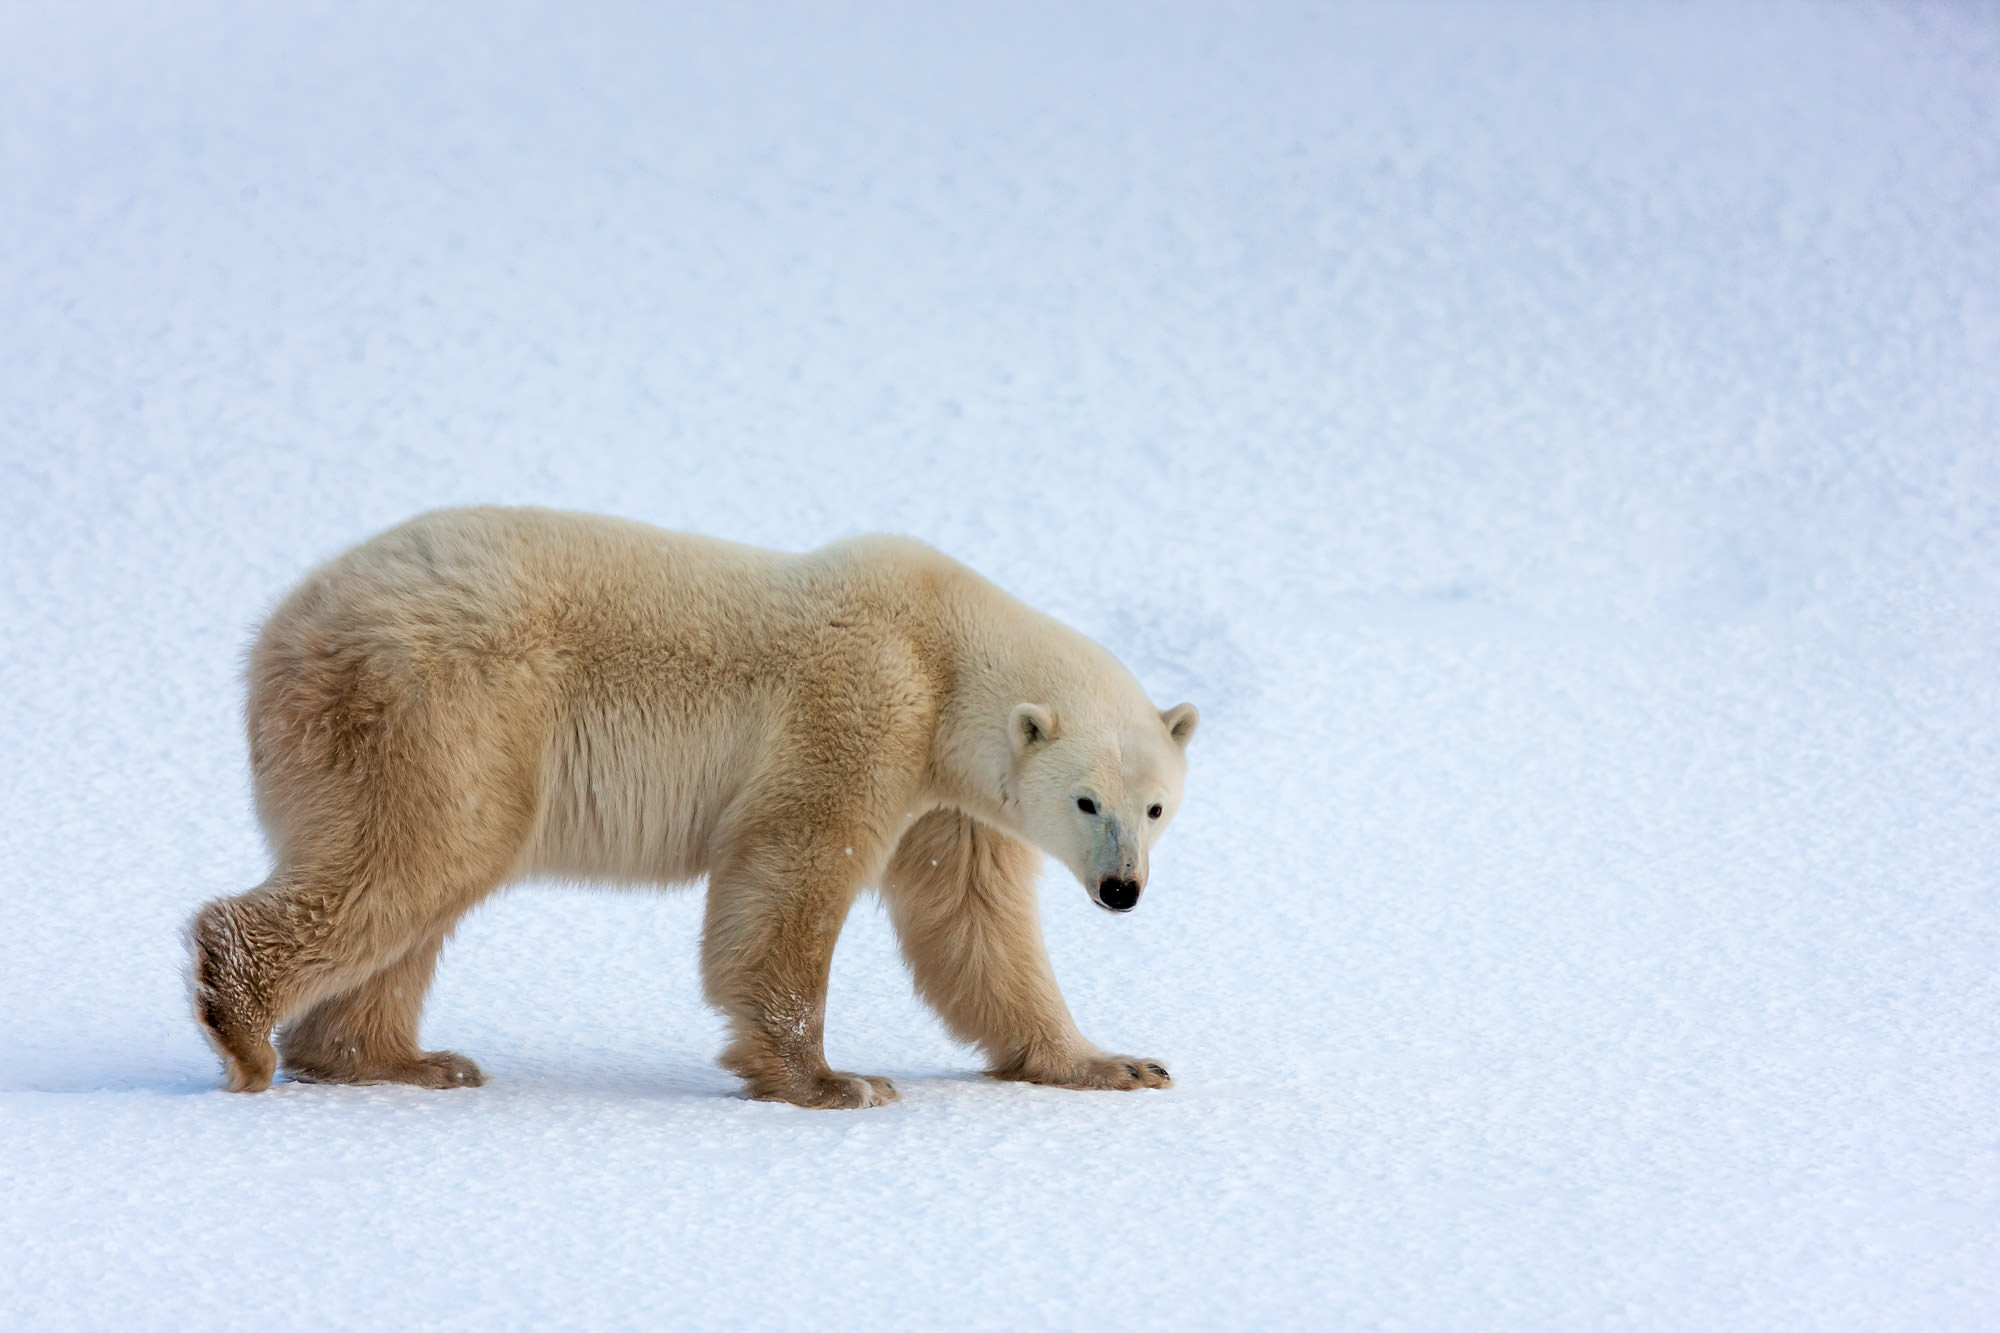 Bear, Polar Bear, Canada, Churchill, Manitoba, photo